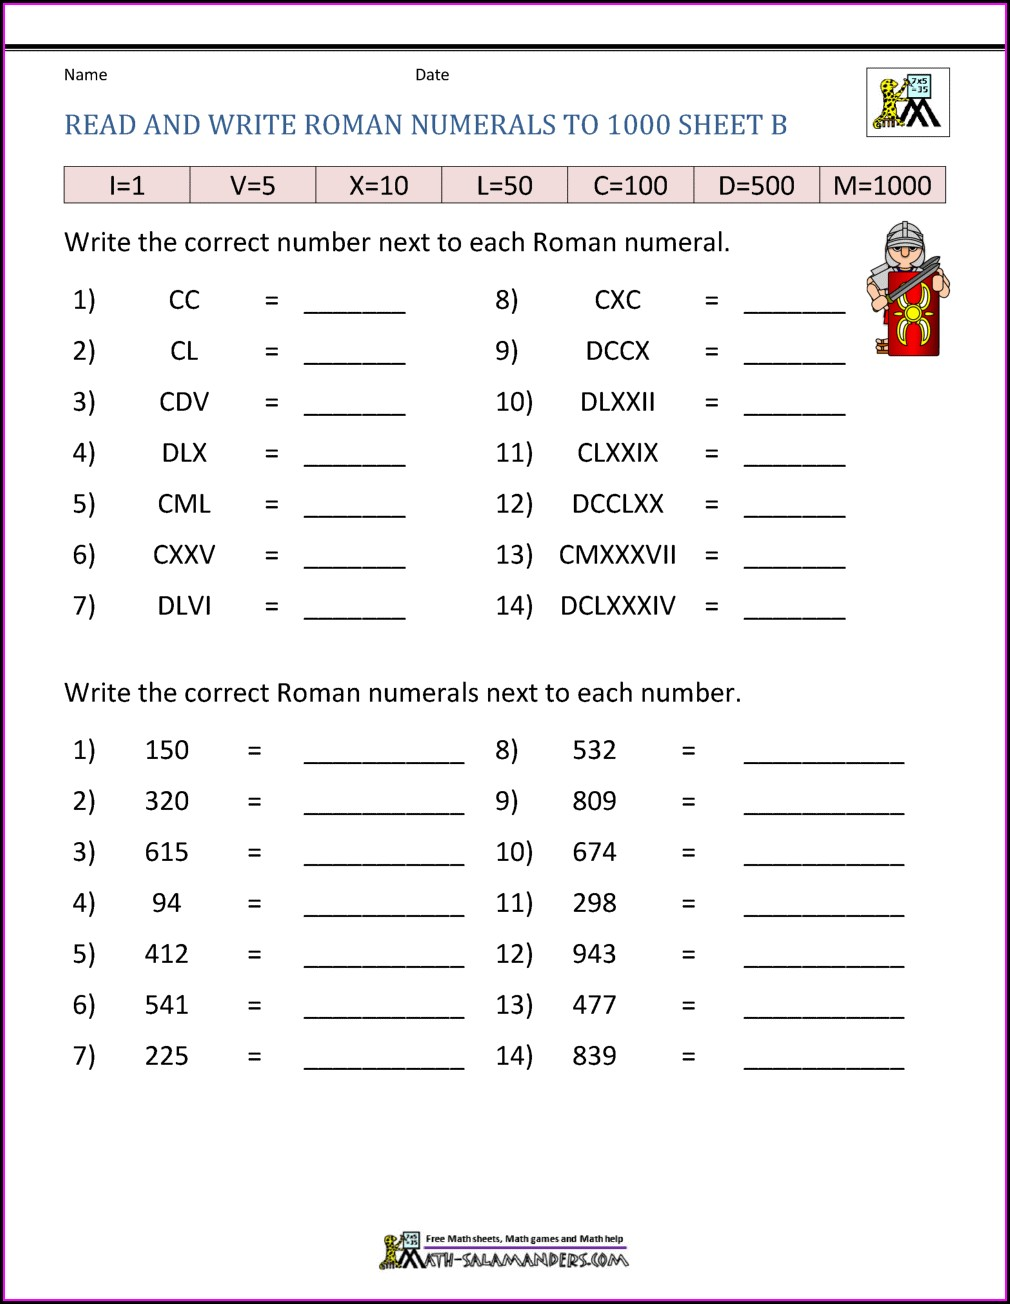 Worksheet On Roman Numerals For Class 3